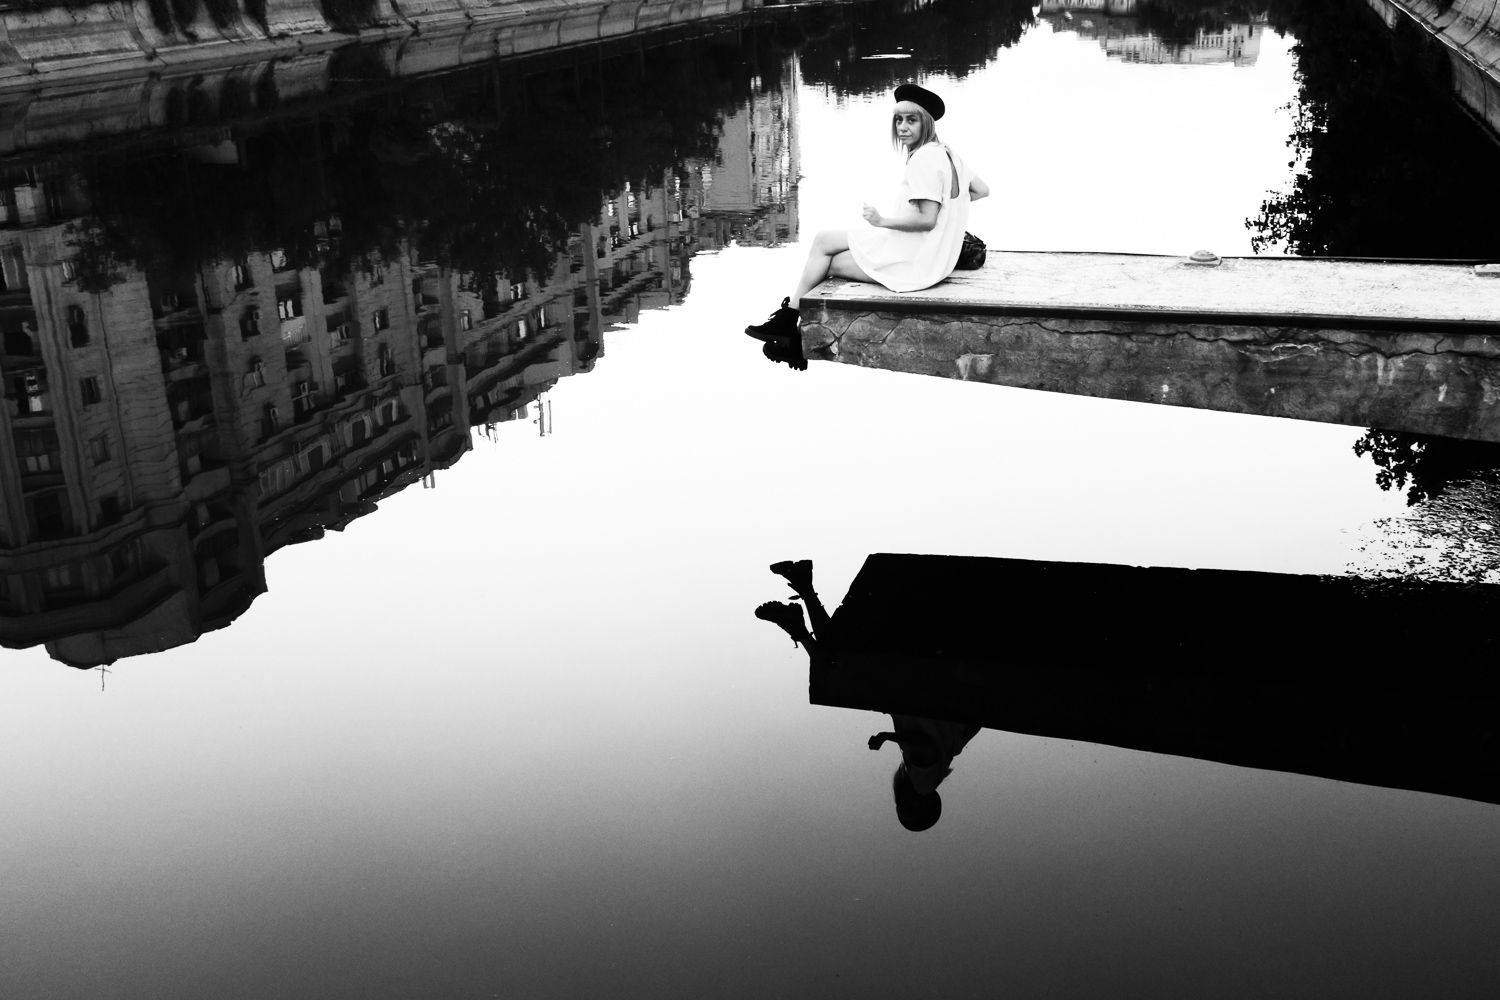 street photo of woman sitting on jetty with reflection in water